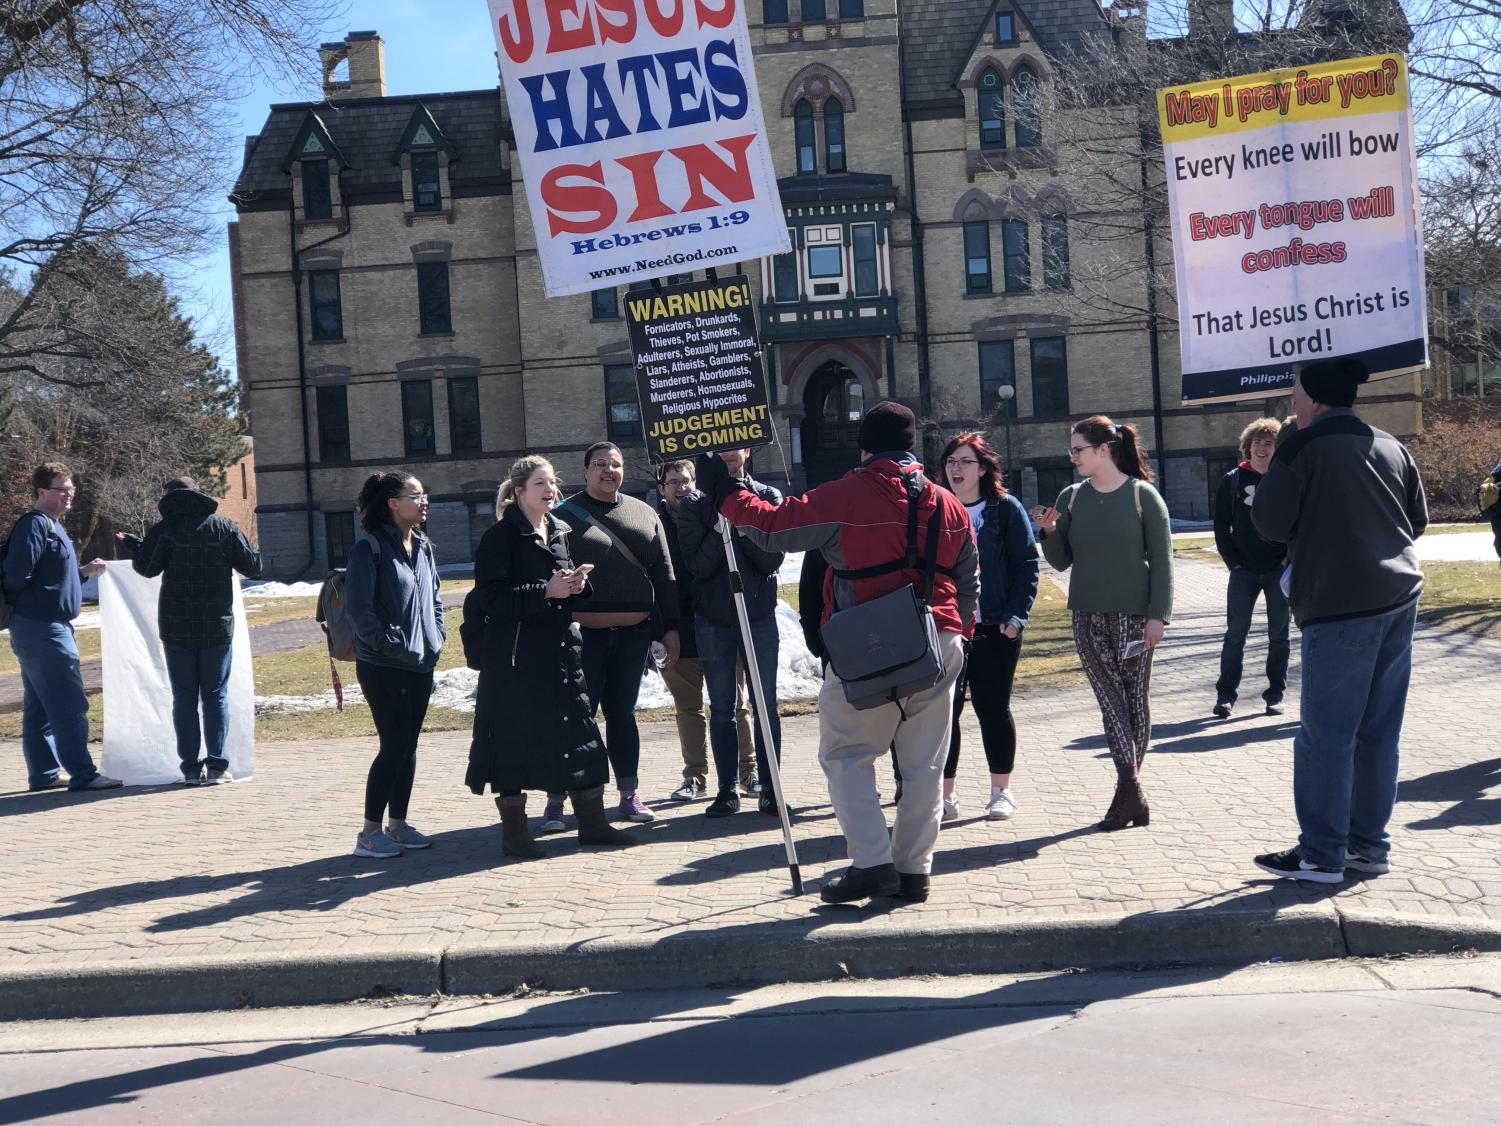 Hamline students speak with protesters in this Oracle file photo from April 2018.